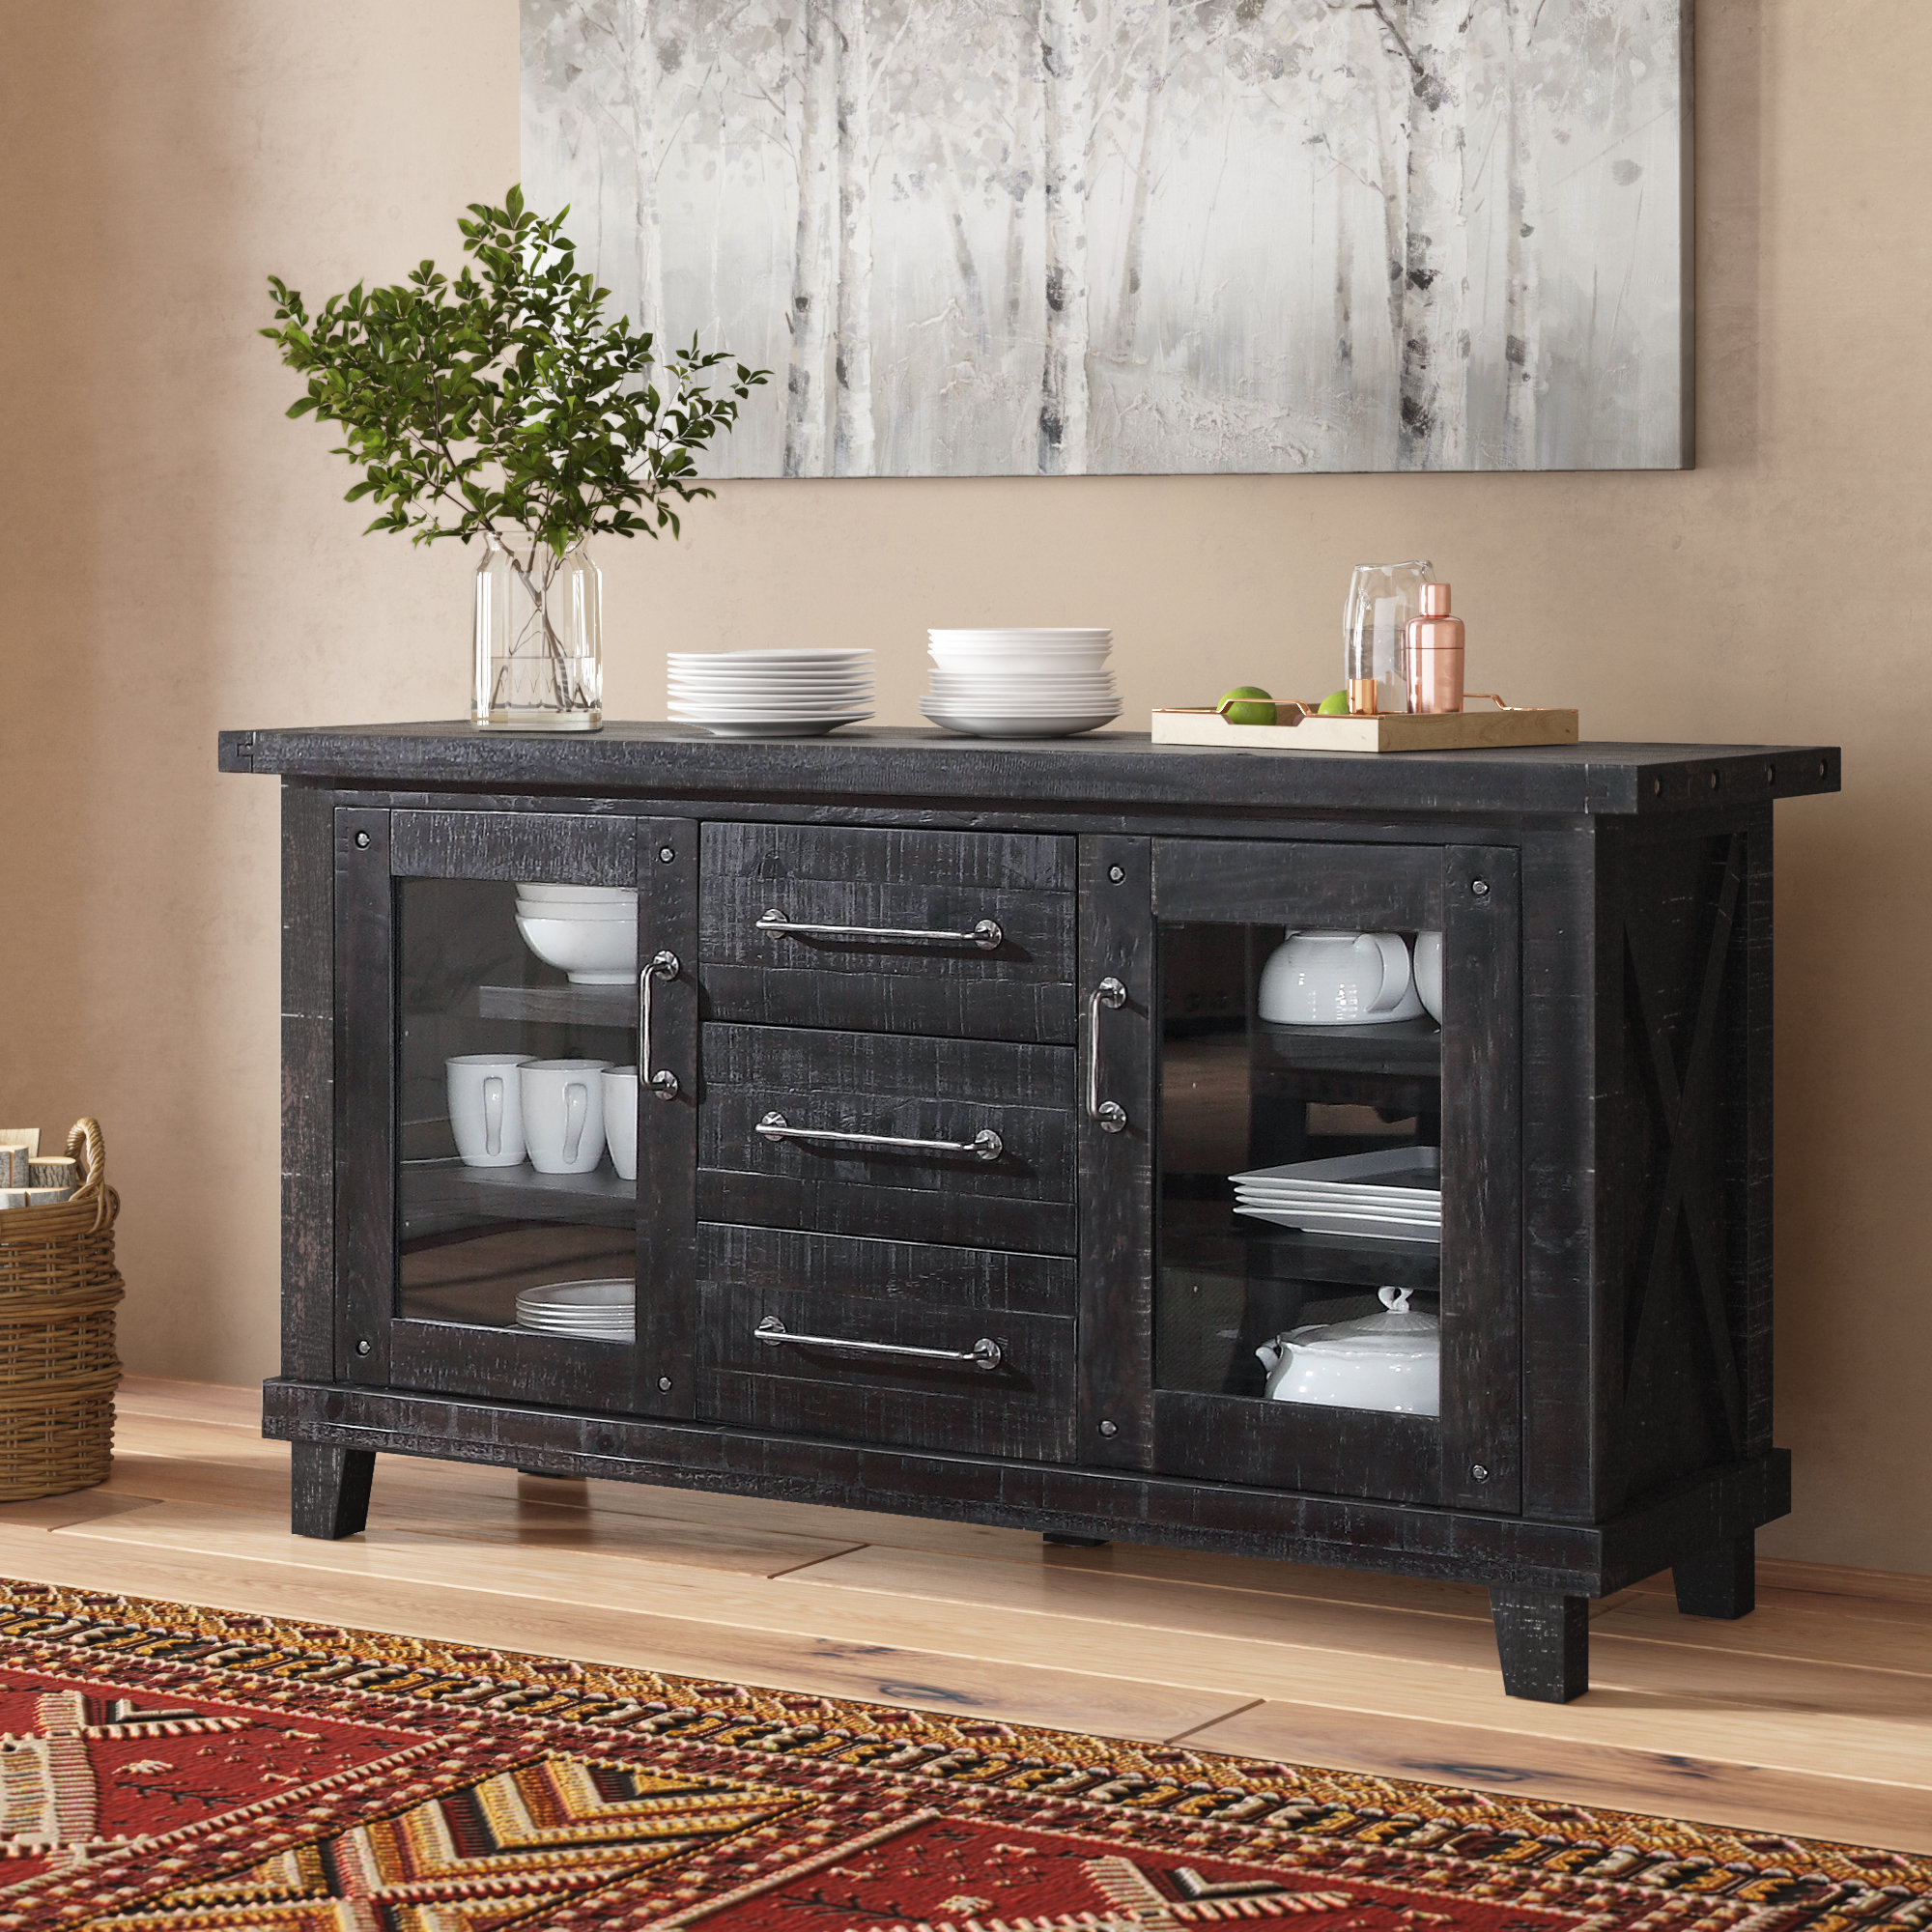 Fashionable Laurel Foundry Modern Farmhouse Langsa Sideboard & Reviews Intended For Kratz Sideboards (View 9 of 20)